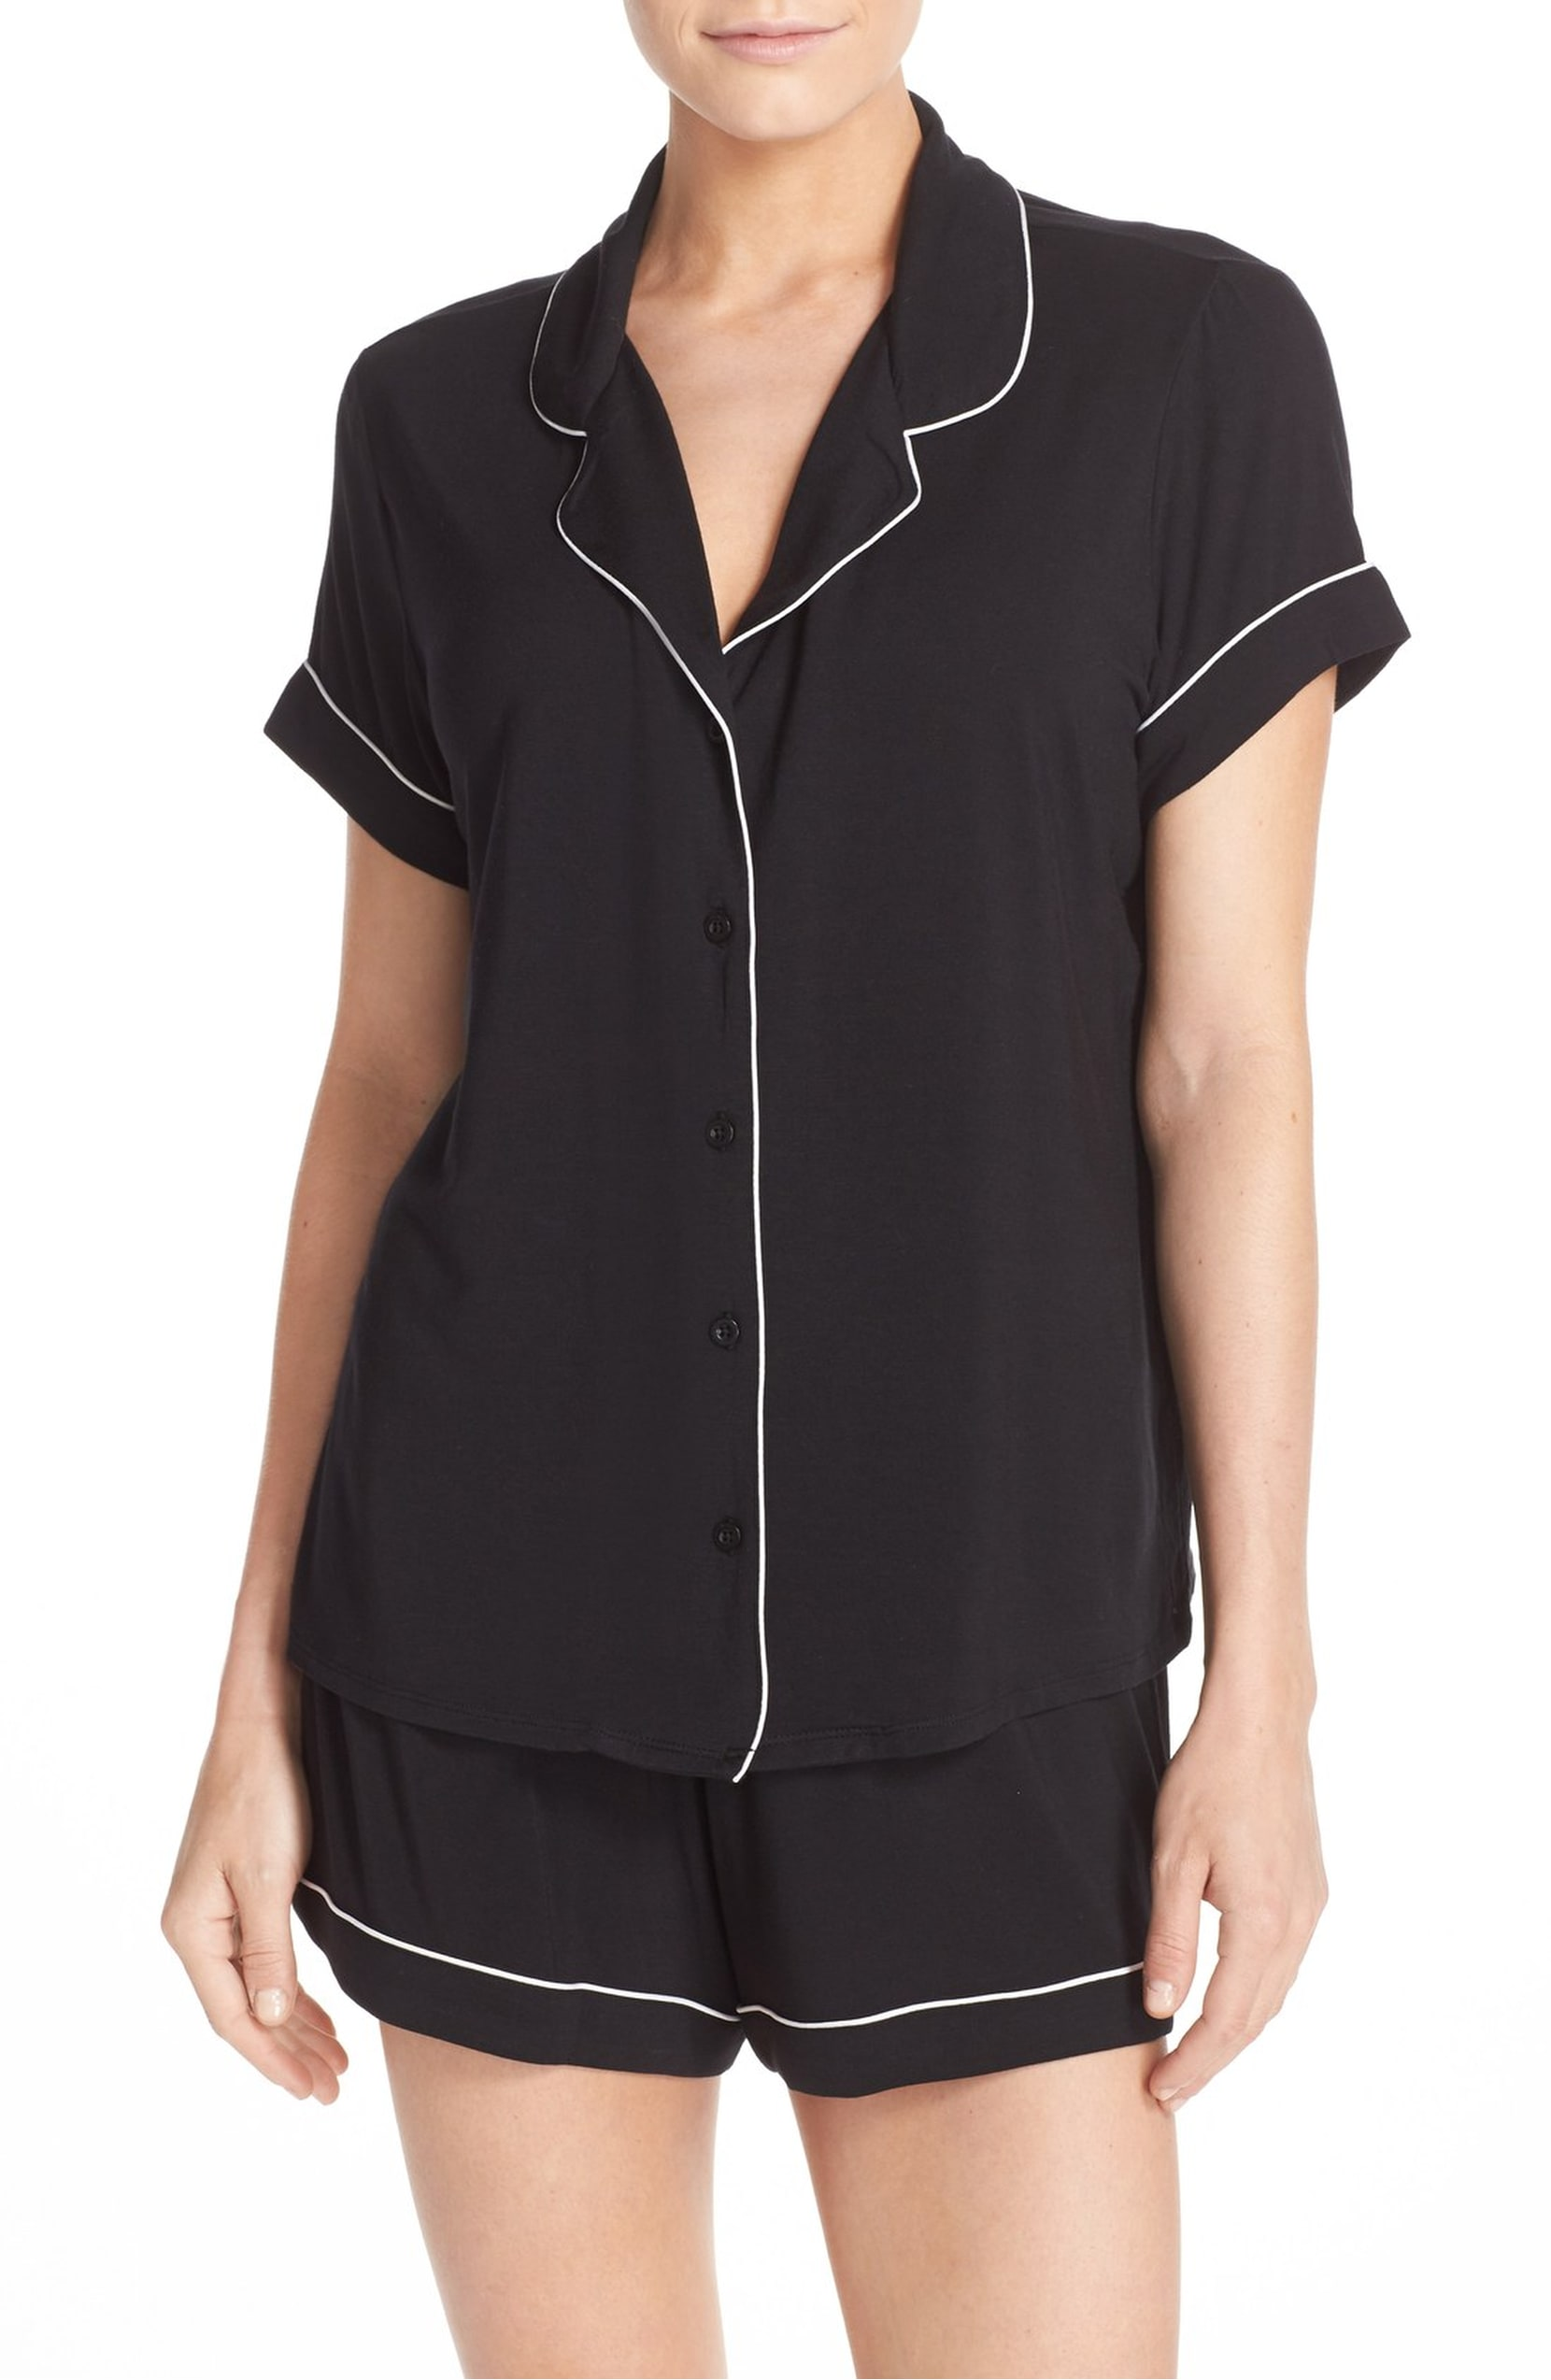 Moonlight Short Pajamas. Sale:$35.90 / After Sale:$55.00. (Image: Nordstrom)